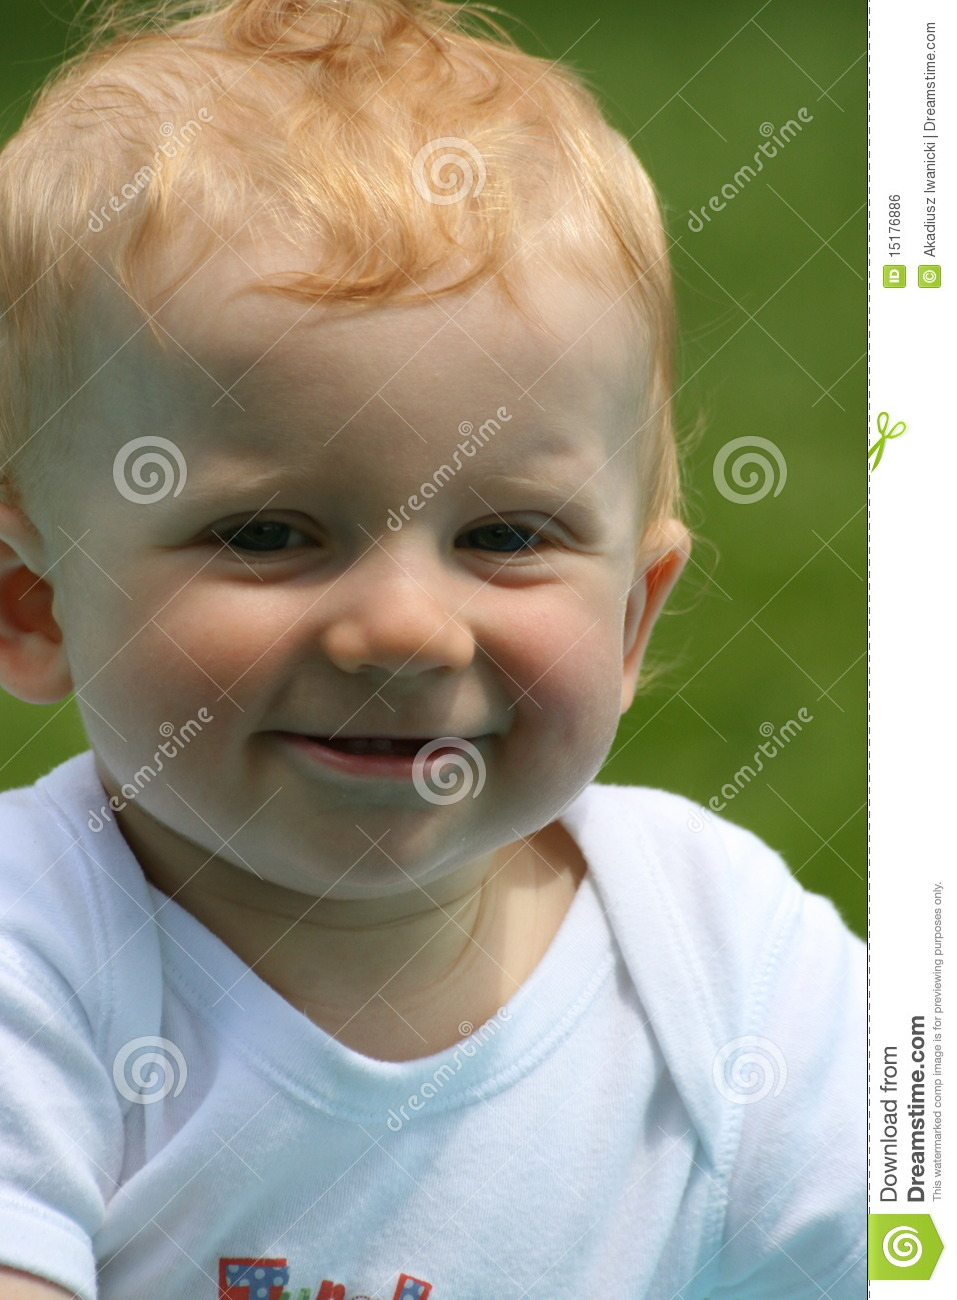 Happy Face Of A Baby Boy Royalty Free Stock Image - Image ...